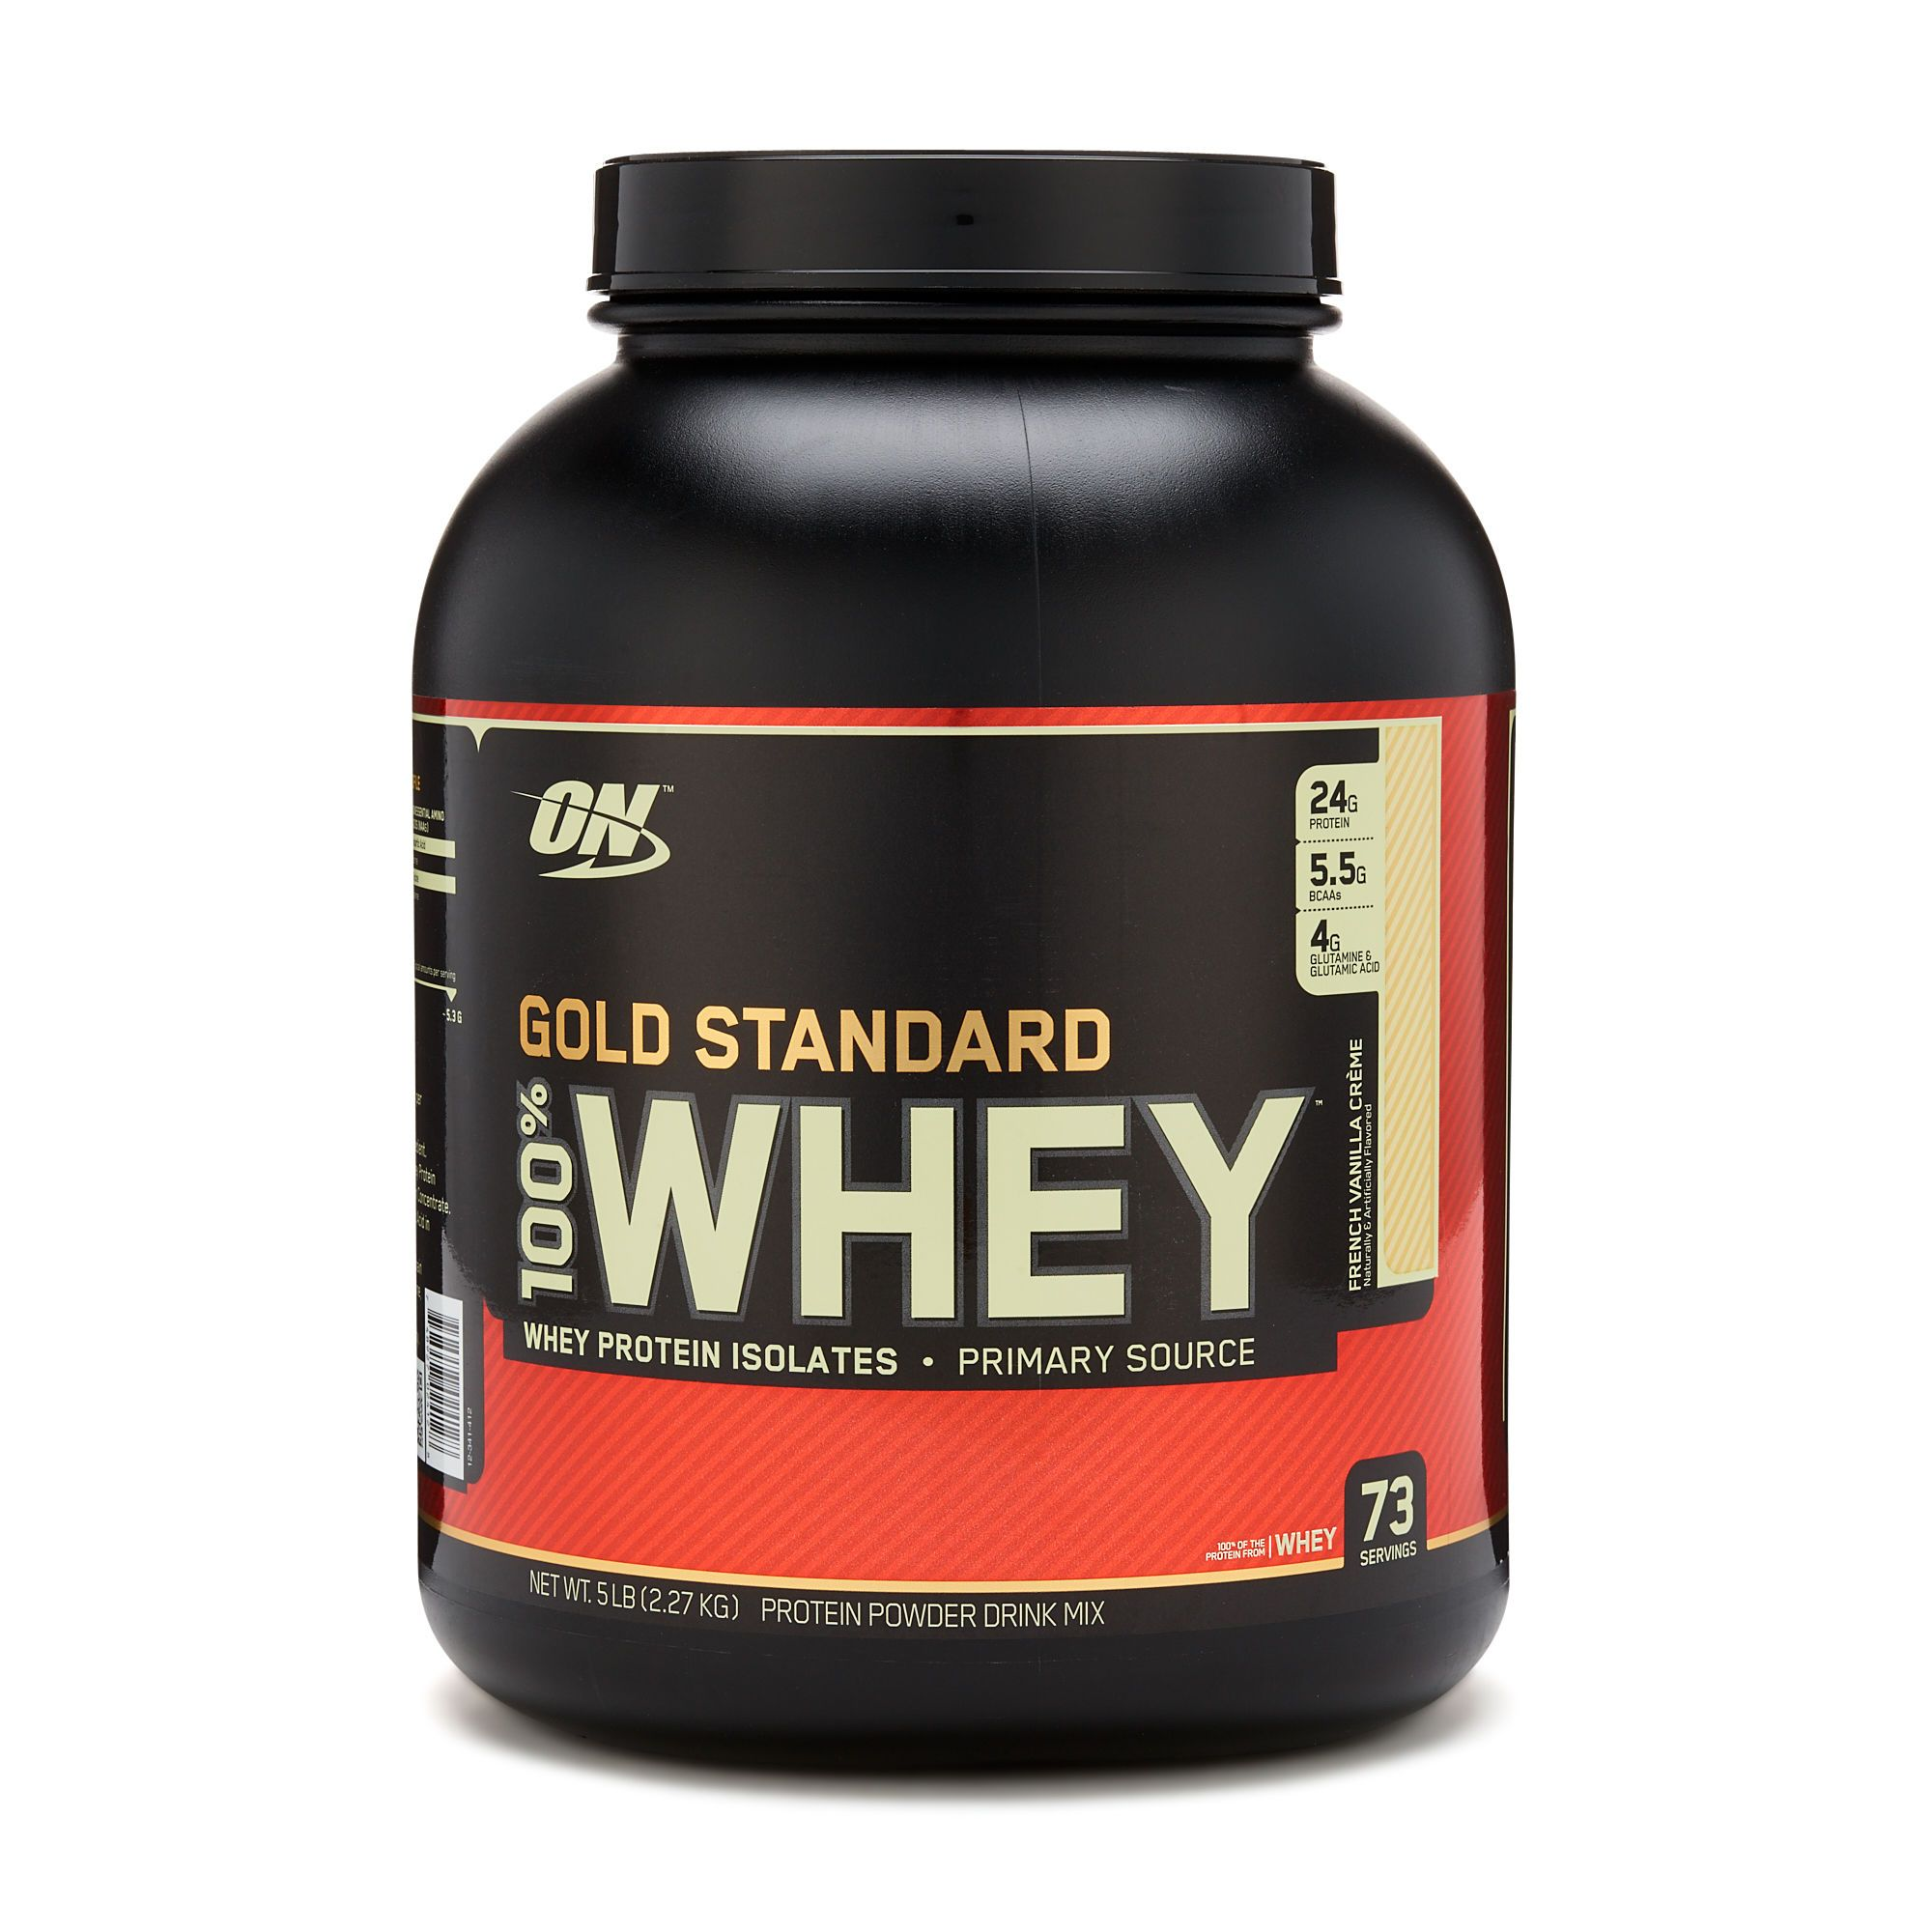 Gold Standard 100 Whey Delivers 24g Of Whey Protein Has 5 5 Grams Of Naturally Occurring Gold Standard Whey Protein Gold Standard Whey Optimum Nutrition Whey